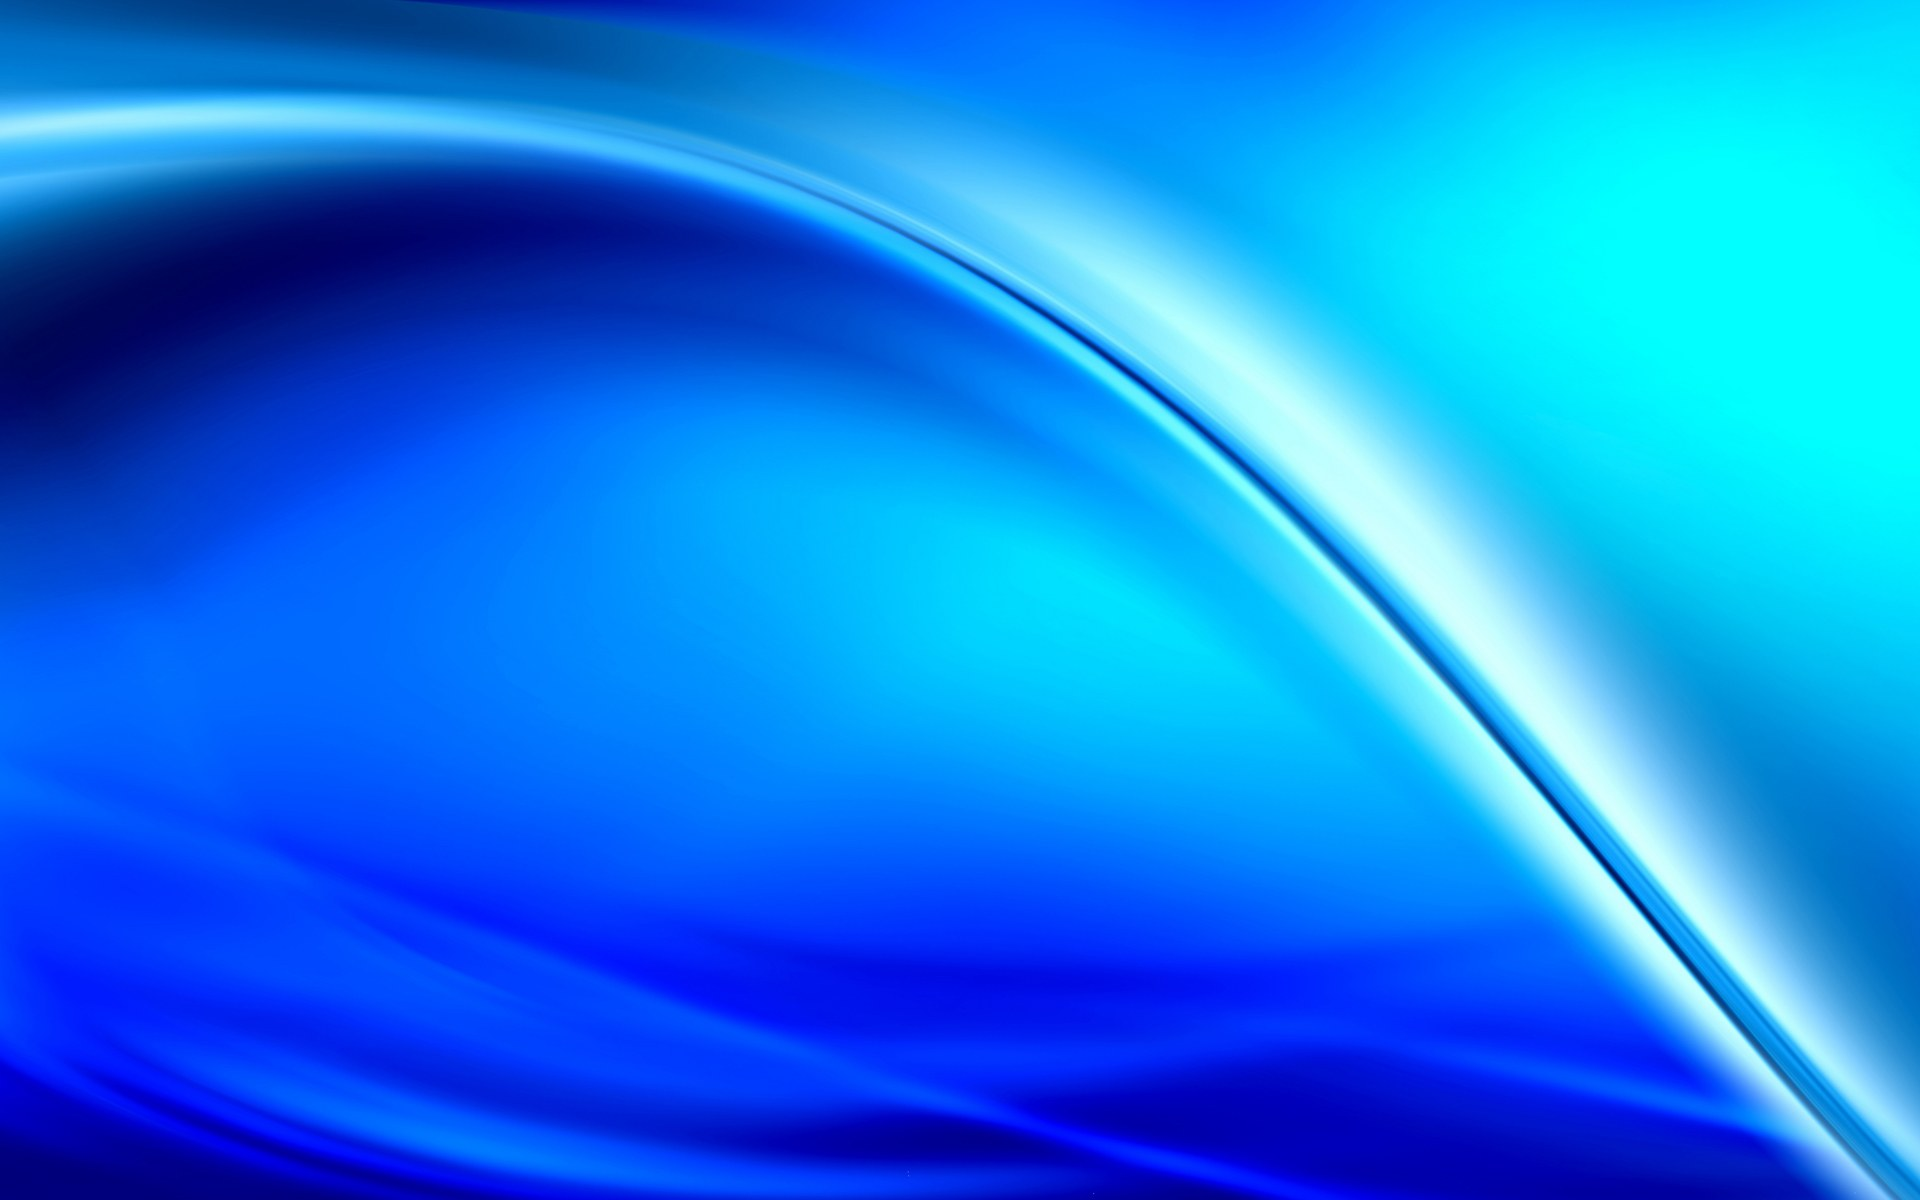 Download 9000+ Wallpaper Biru Gelap Hd HD Terbaru